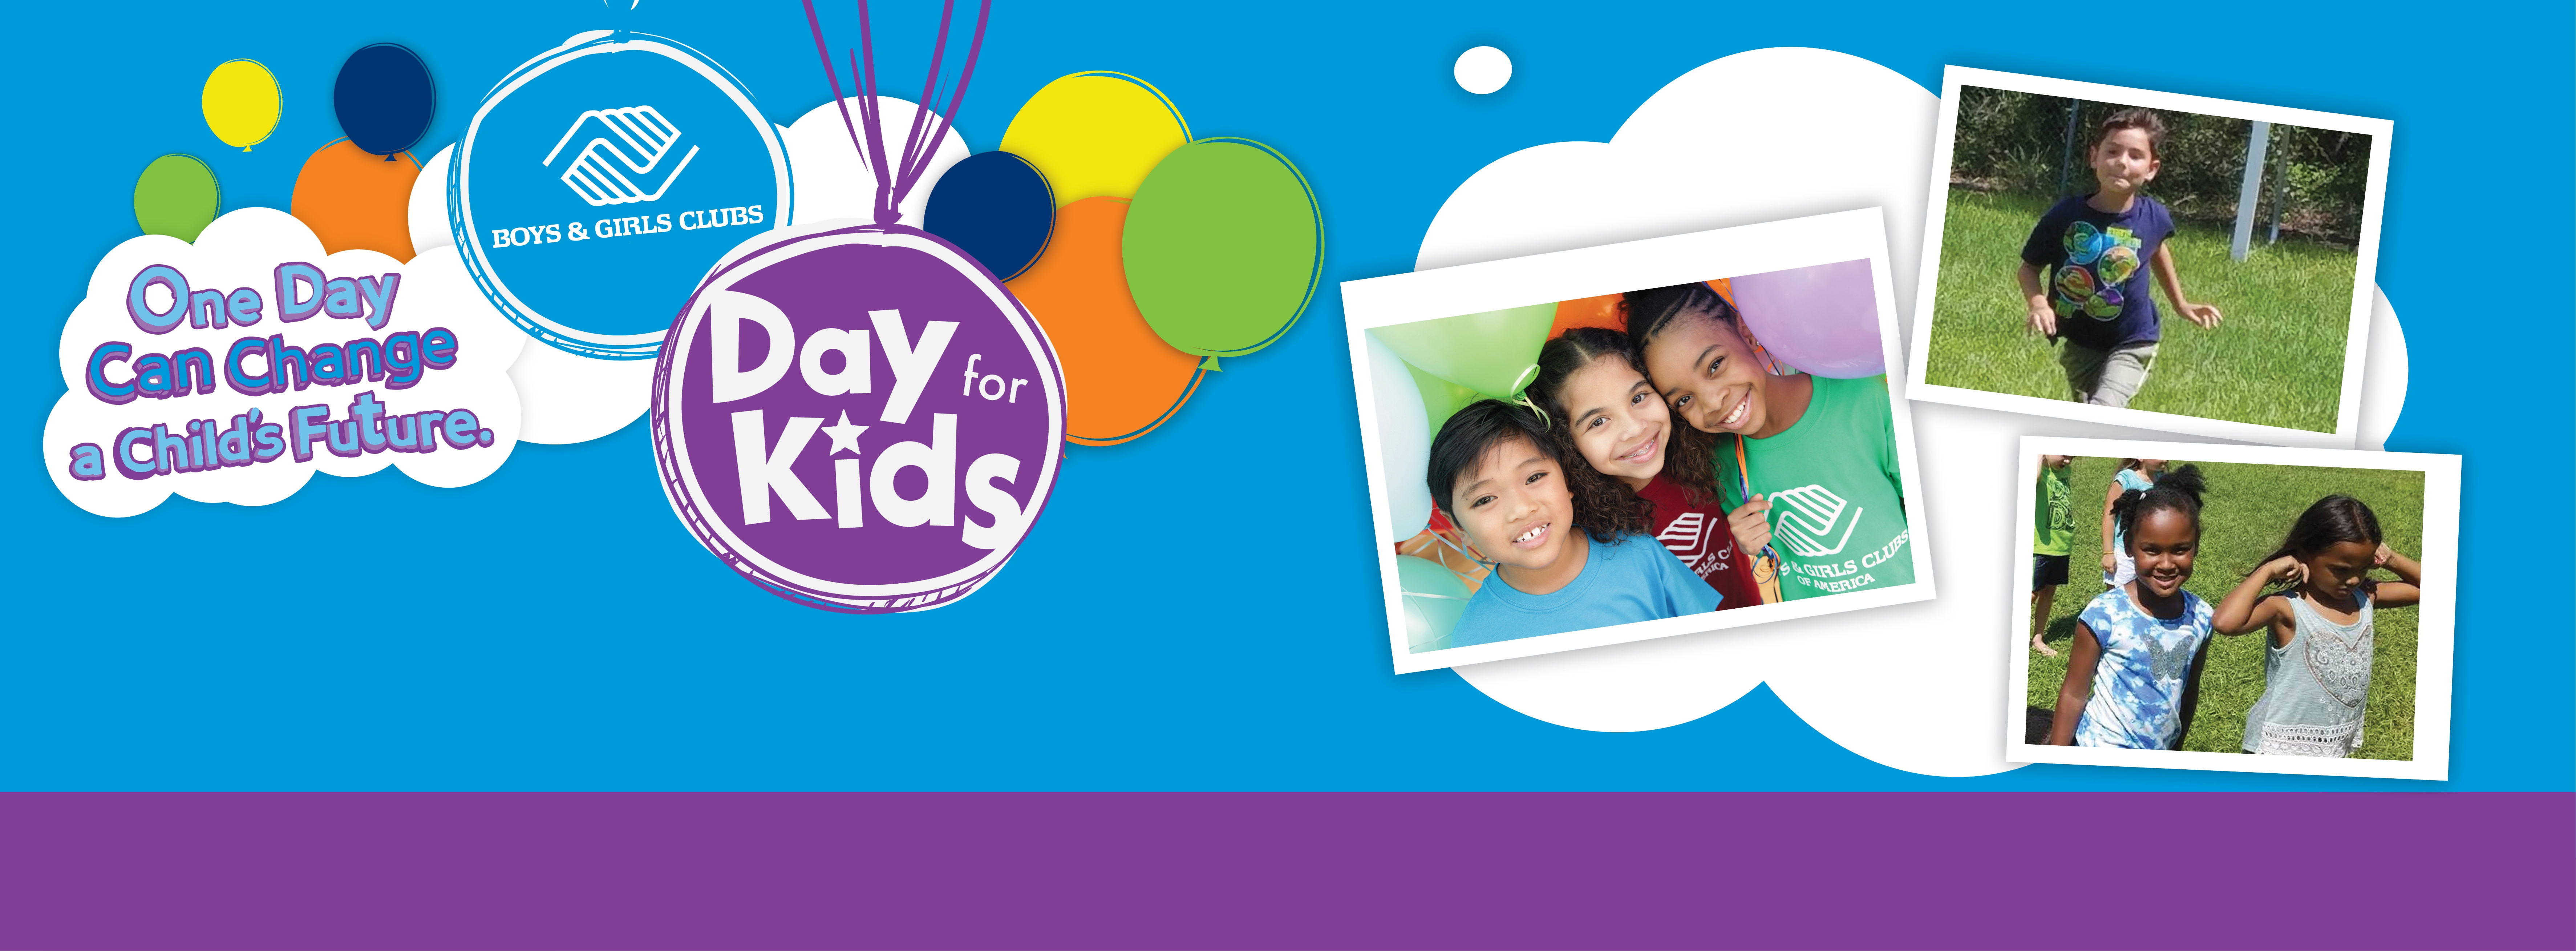 Day for Kids Fun Day